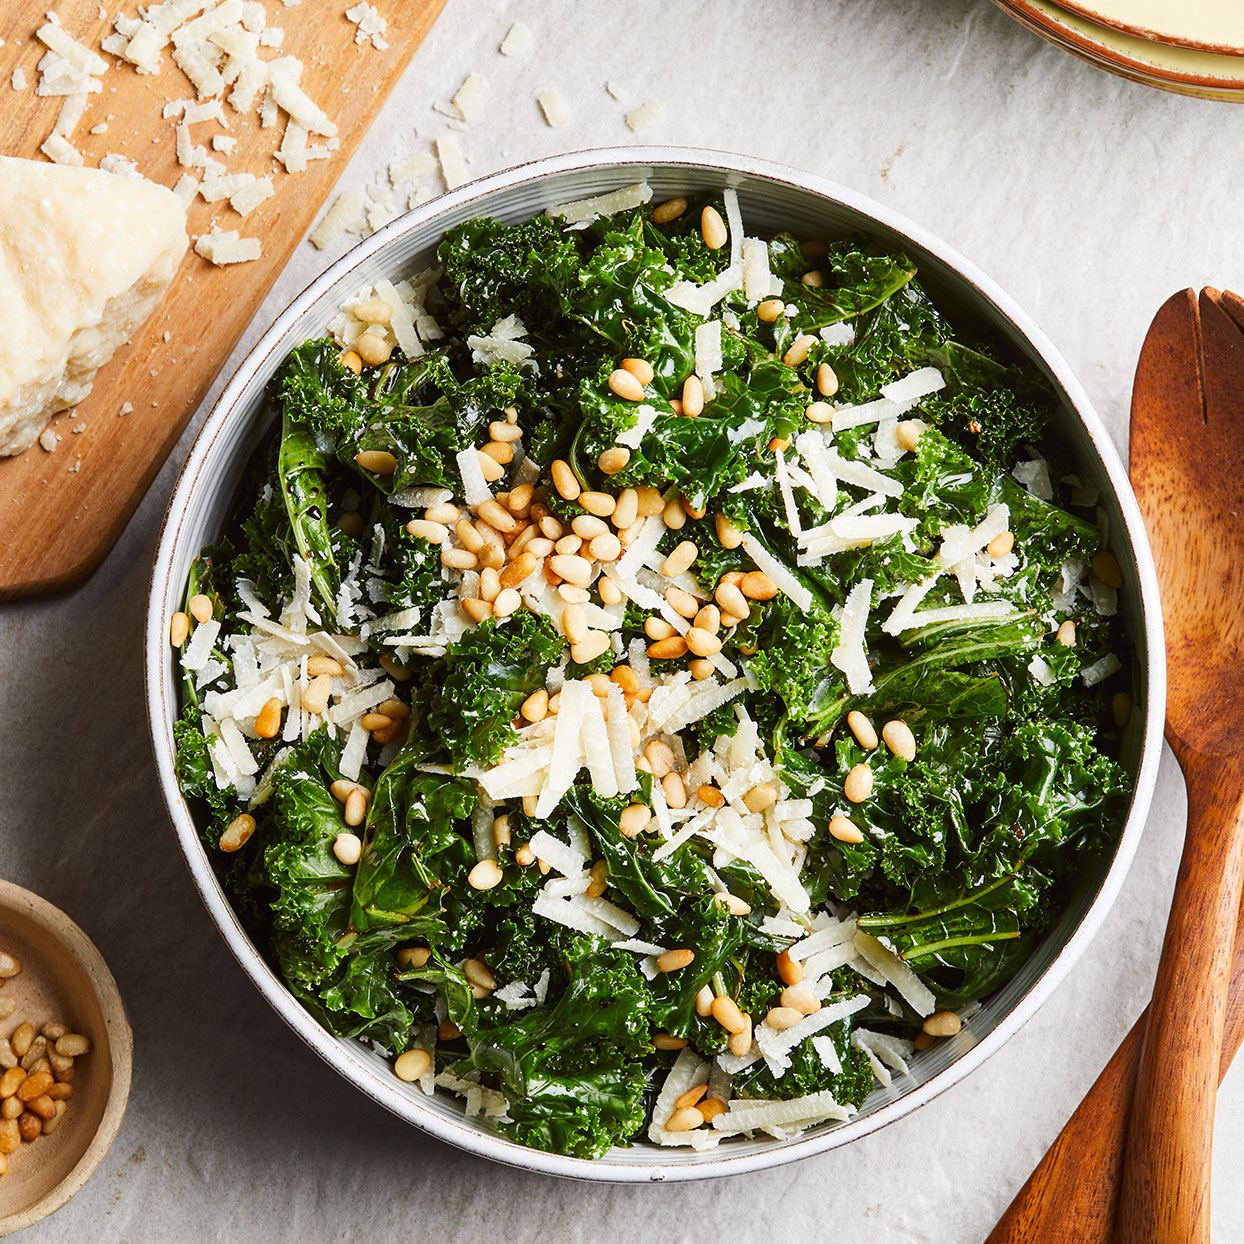 Kale Salad with Balsamic & Parmesan Trusted Brands